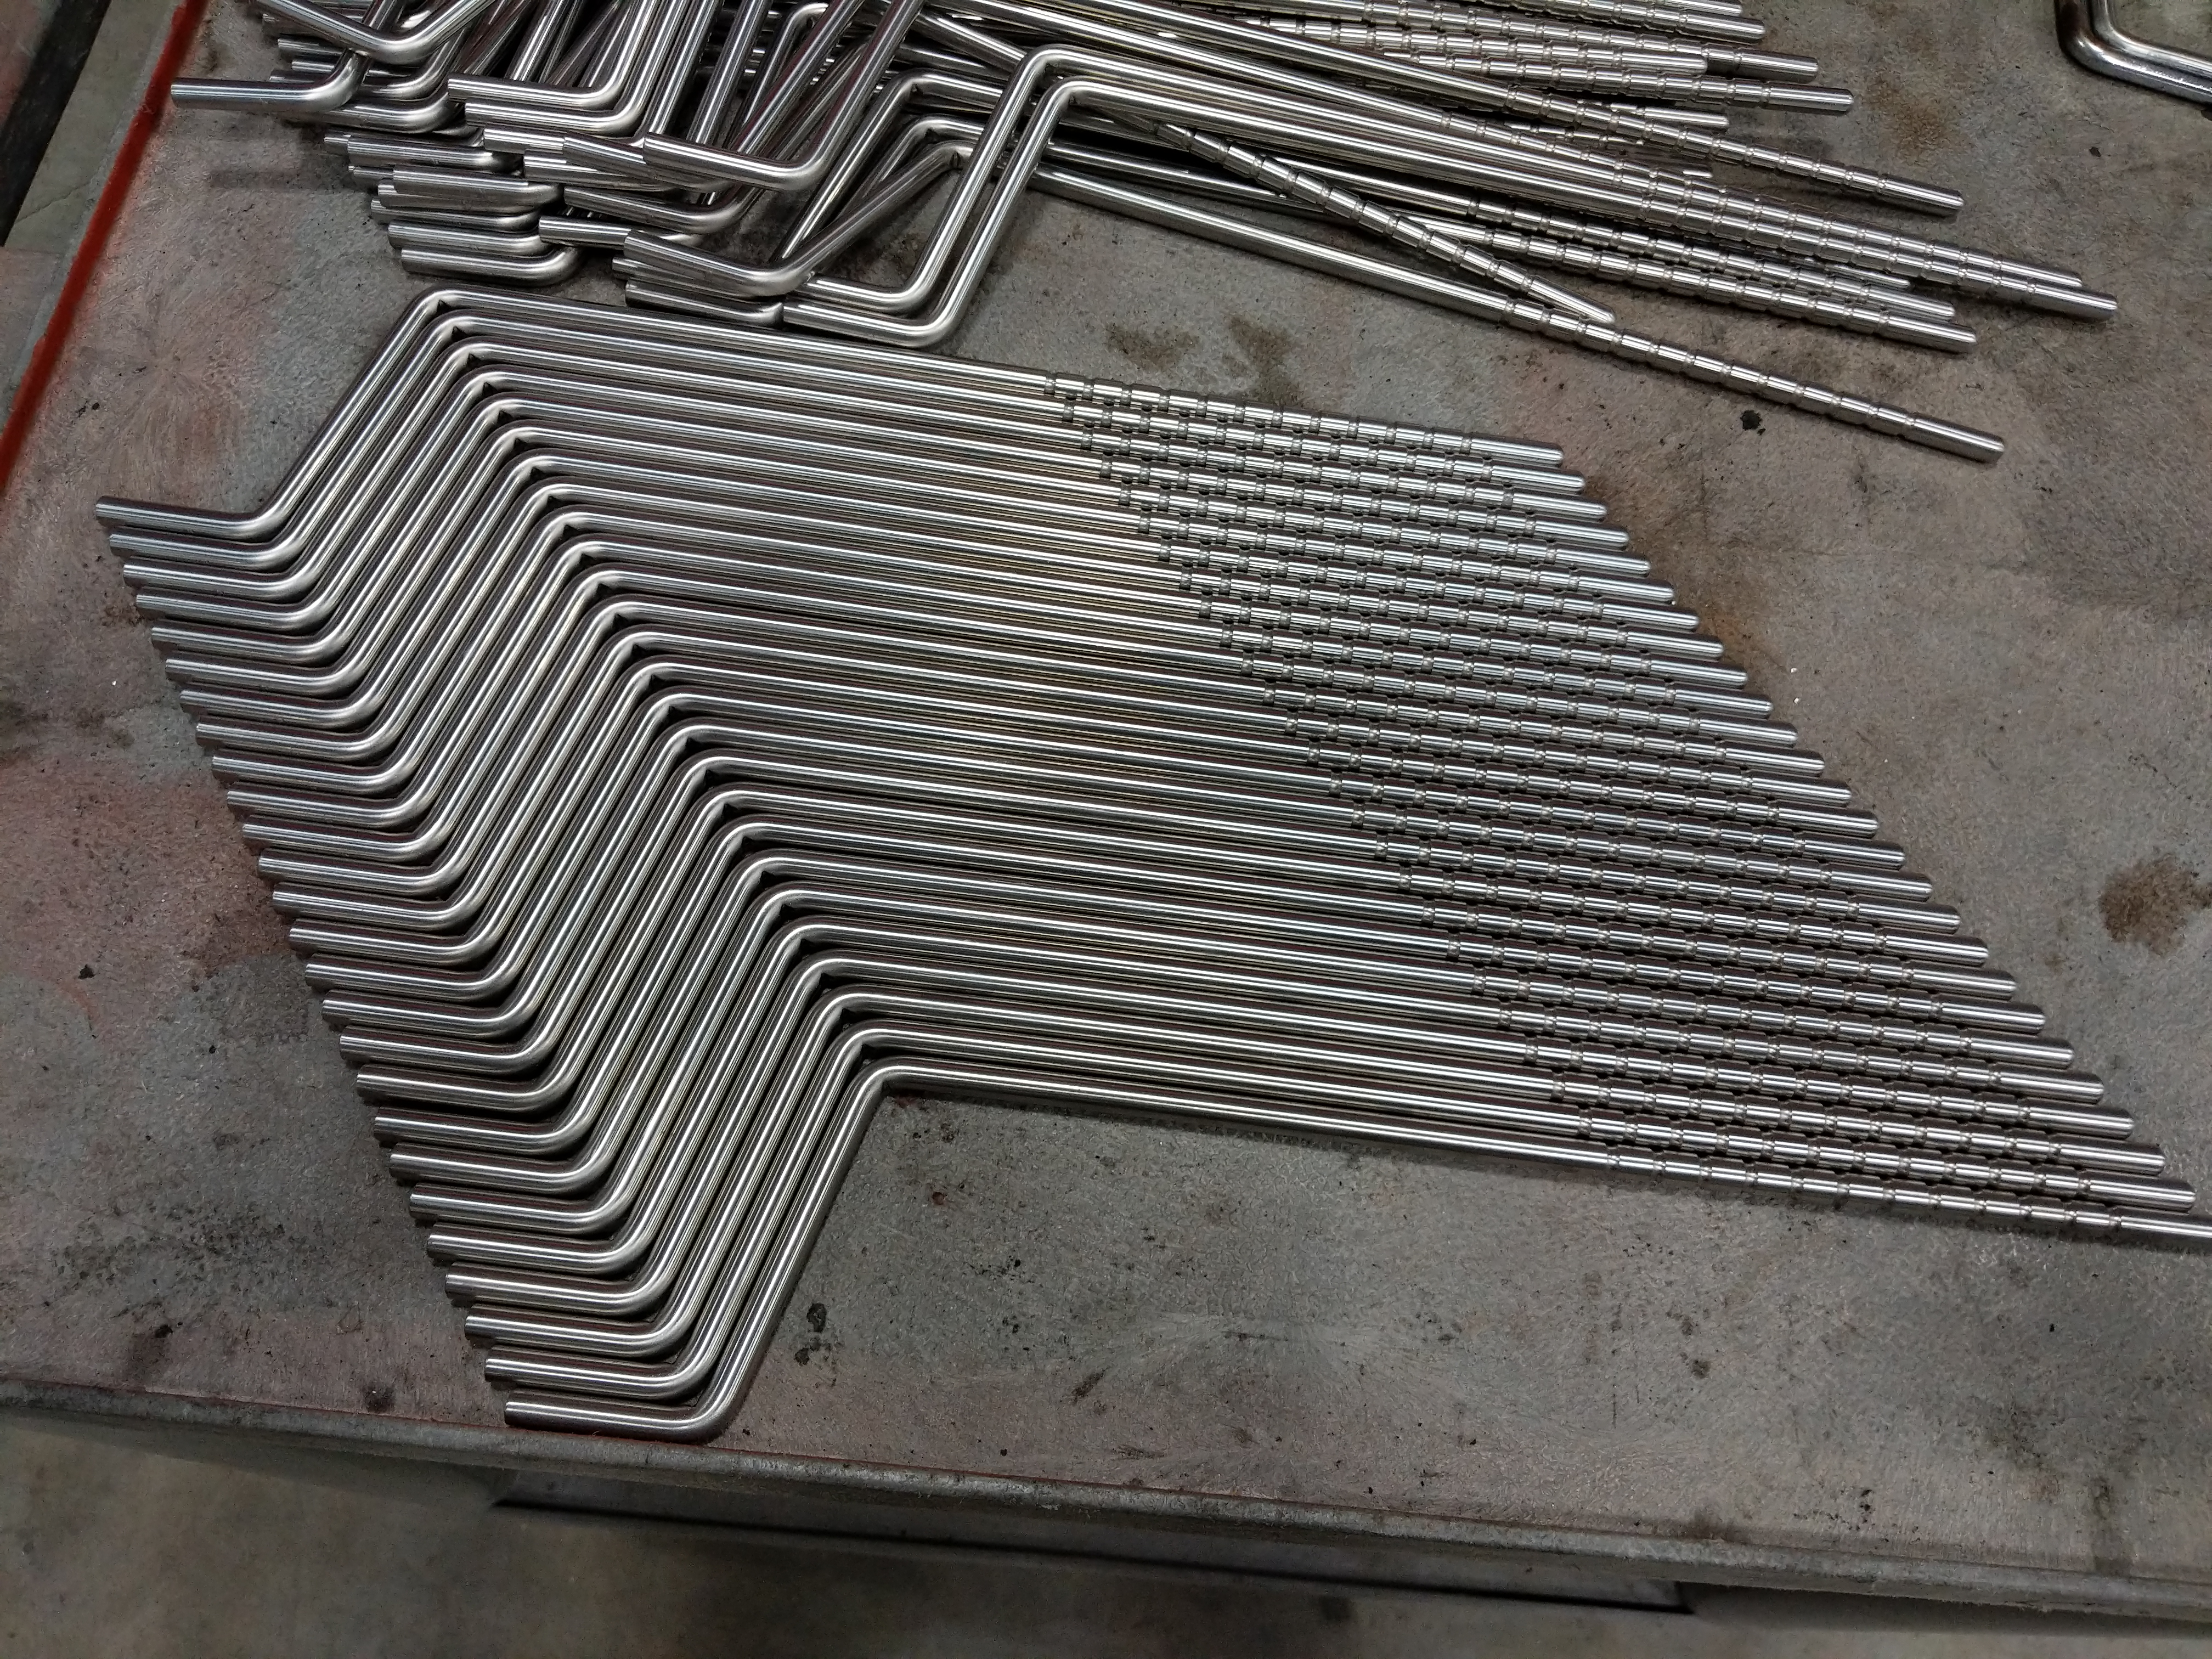 Precision bent stainless steel rods